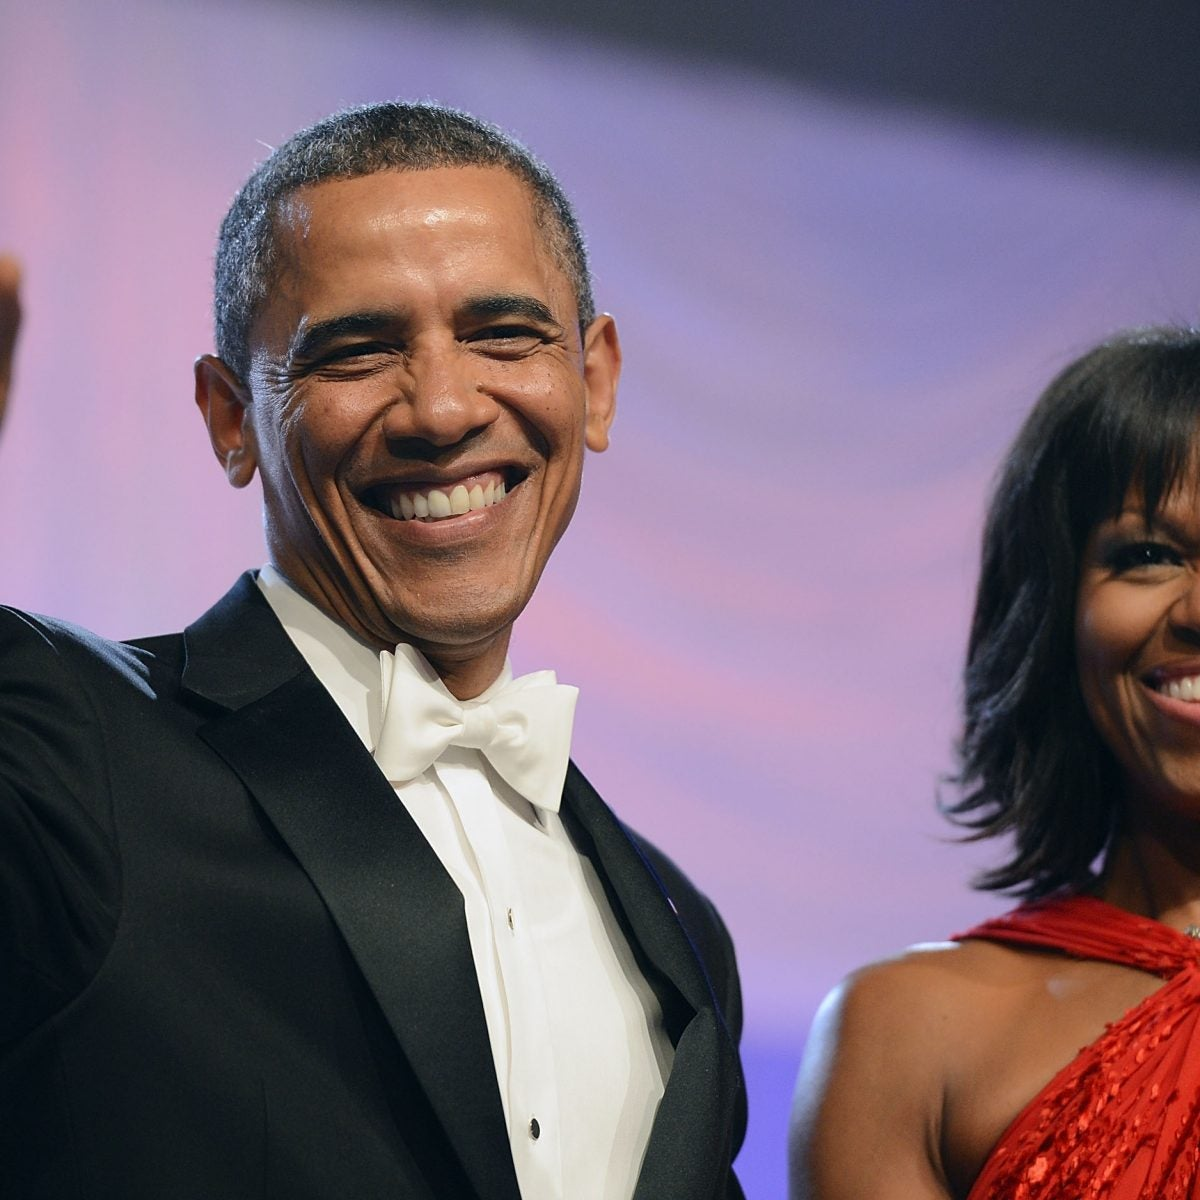 Barack Obama's New Book Explores How His Marriage Became Tense During Presidency